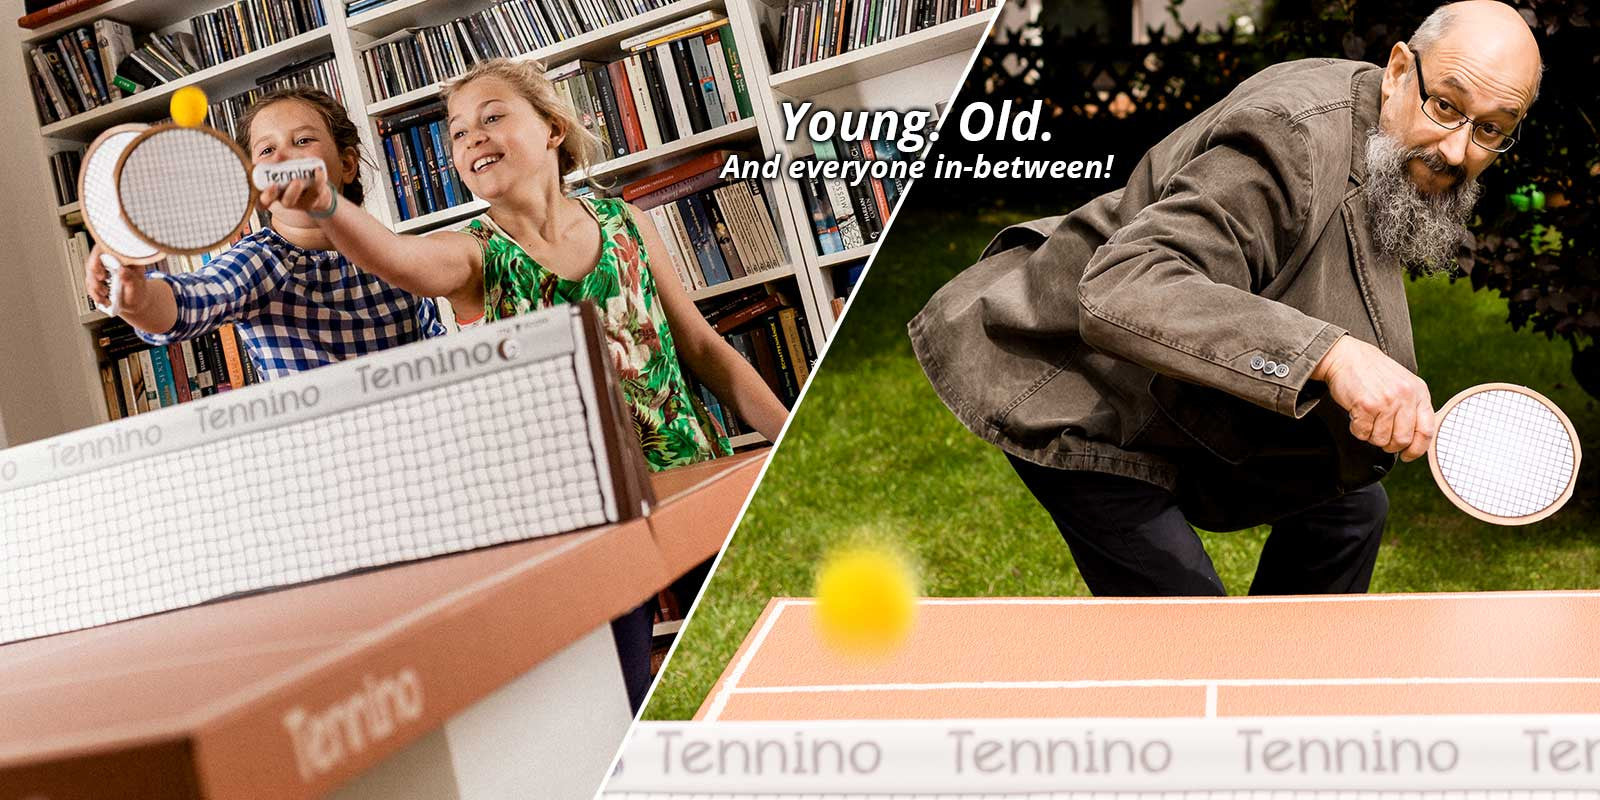 Tennino table tennis for young, old and everyone in-between!